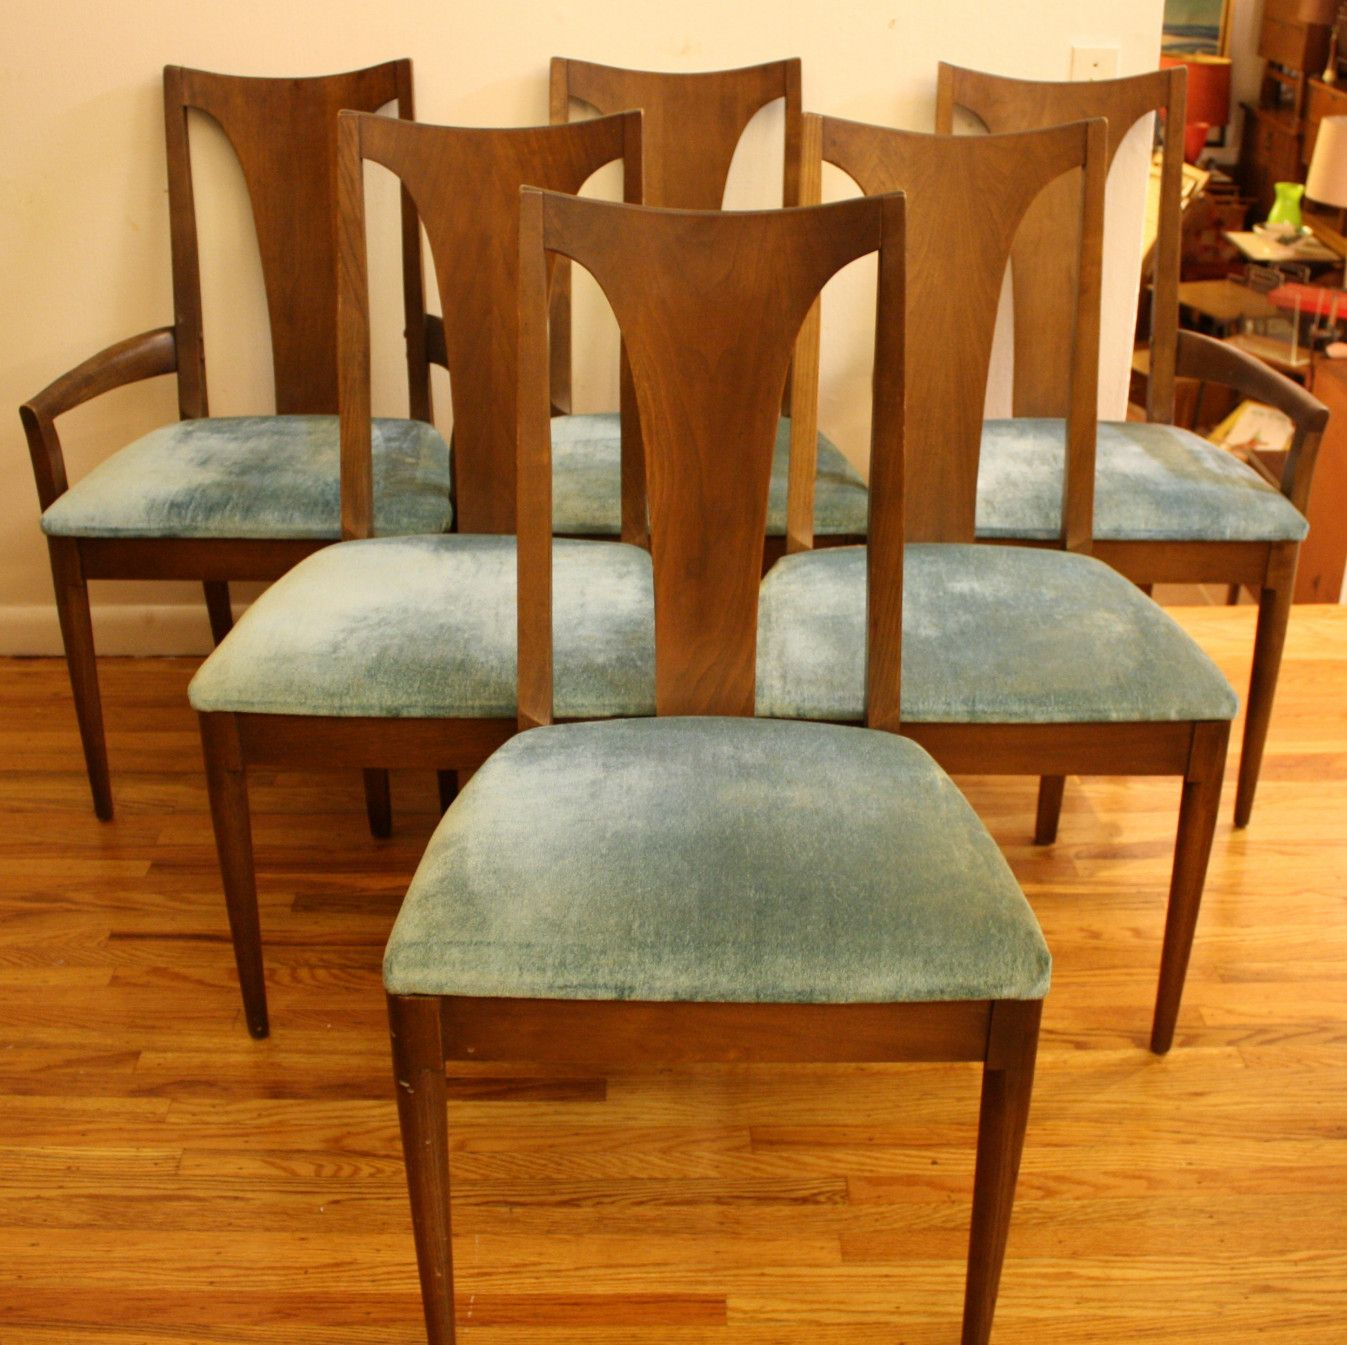 Beau 70+ Broyhill Dining Chairs Discontinued   Modern Furniture Design Check  More At Http:/